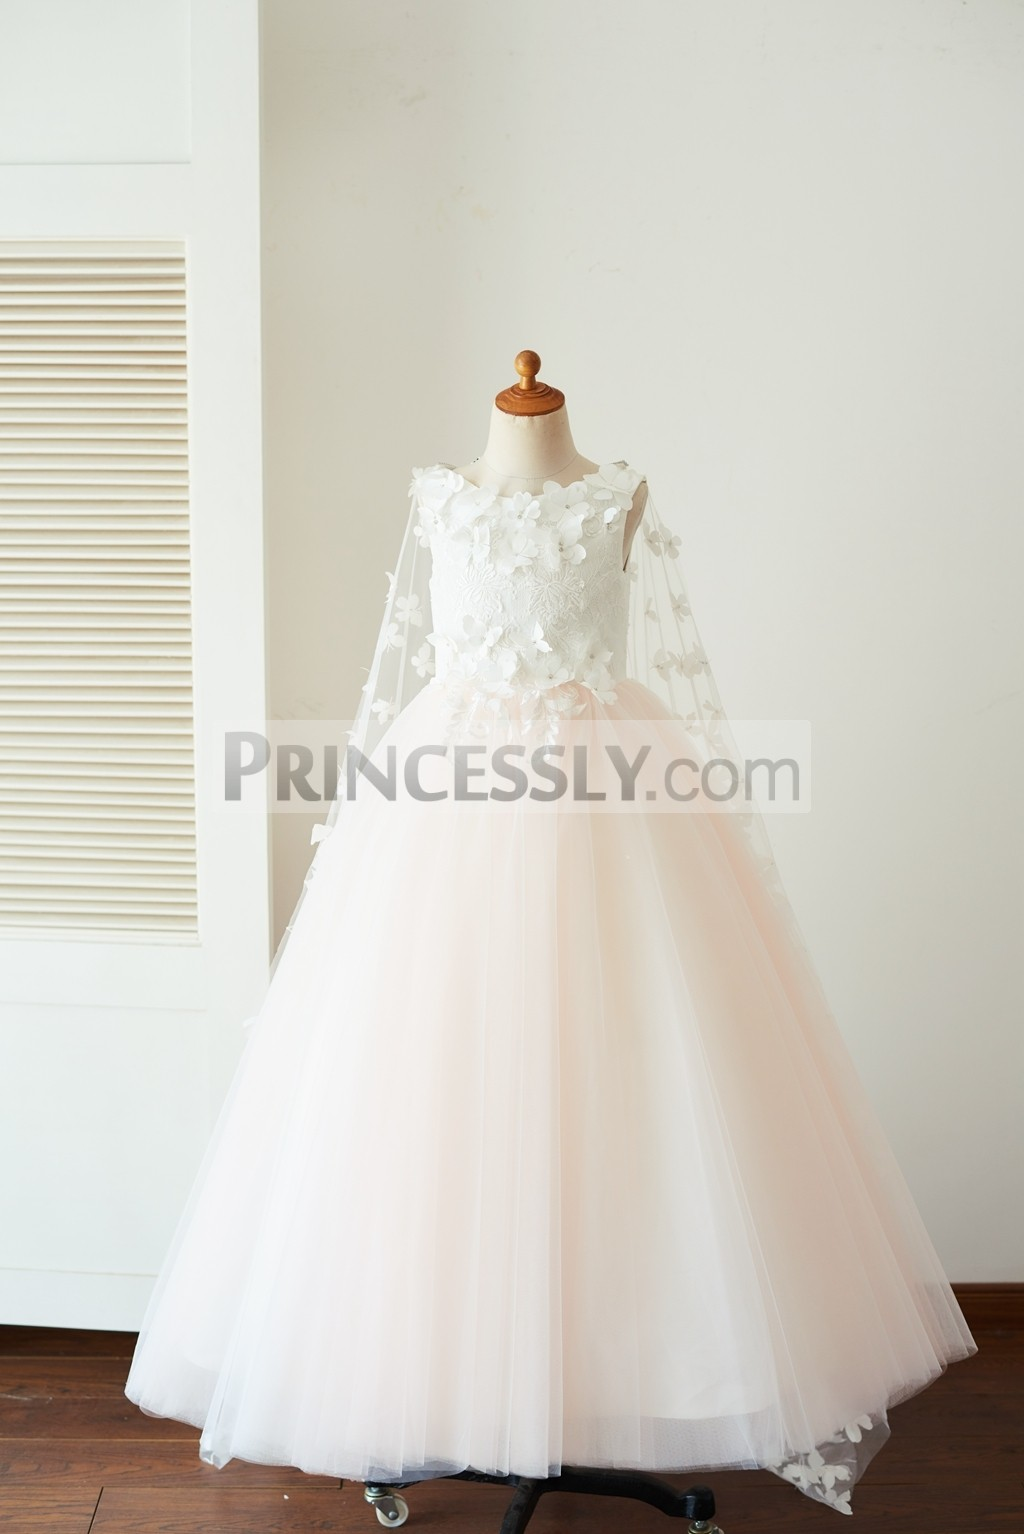 Princessly.com-K1003655-Ivory Lace Pink Tulle Wedding Party Flower Girl Dress with Butterfly Cape-31